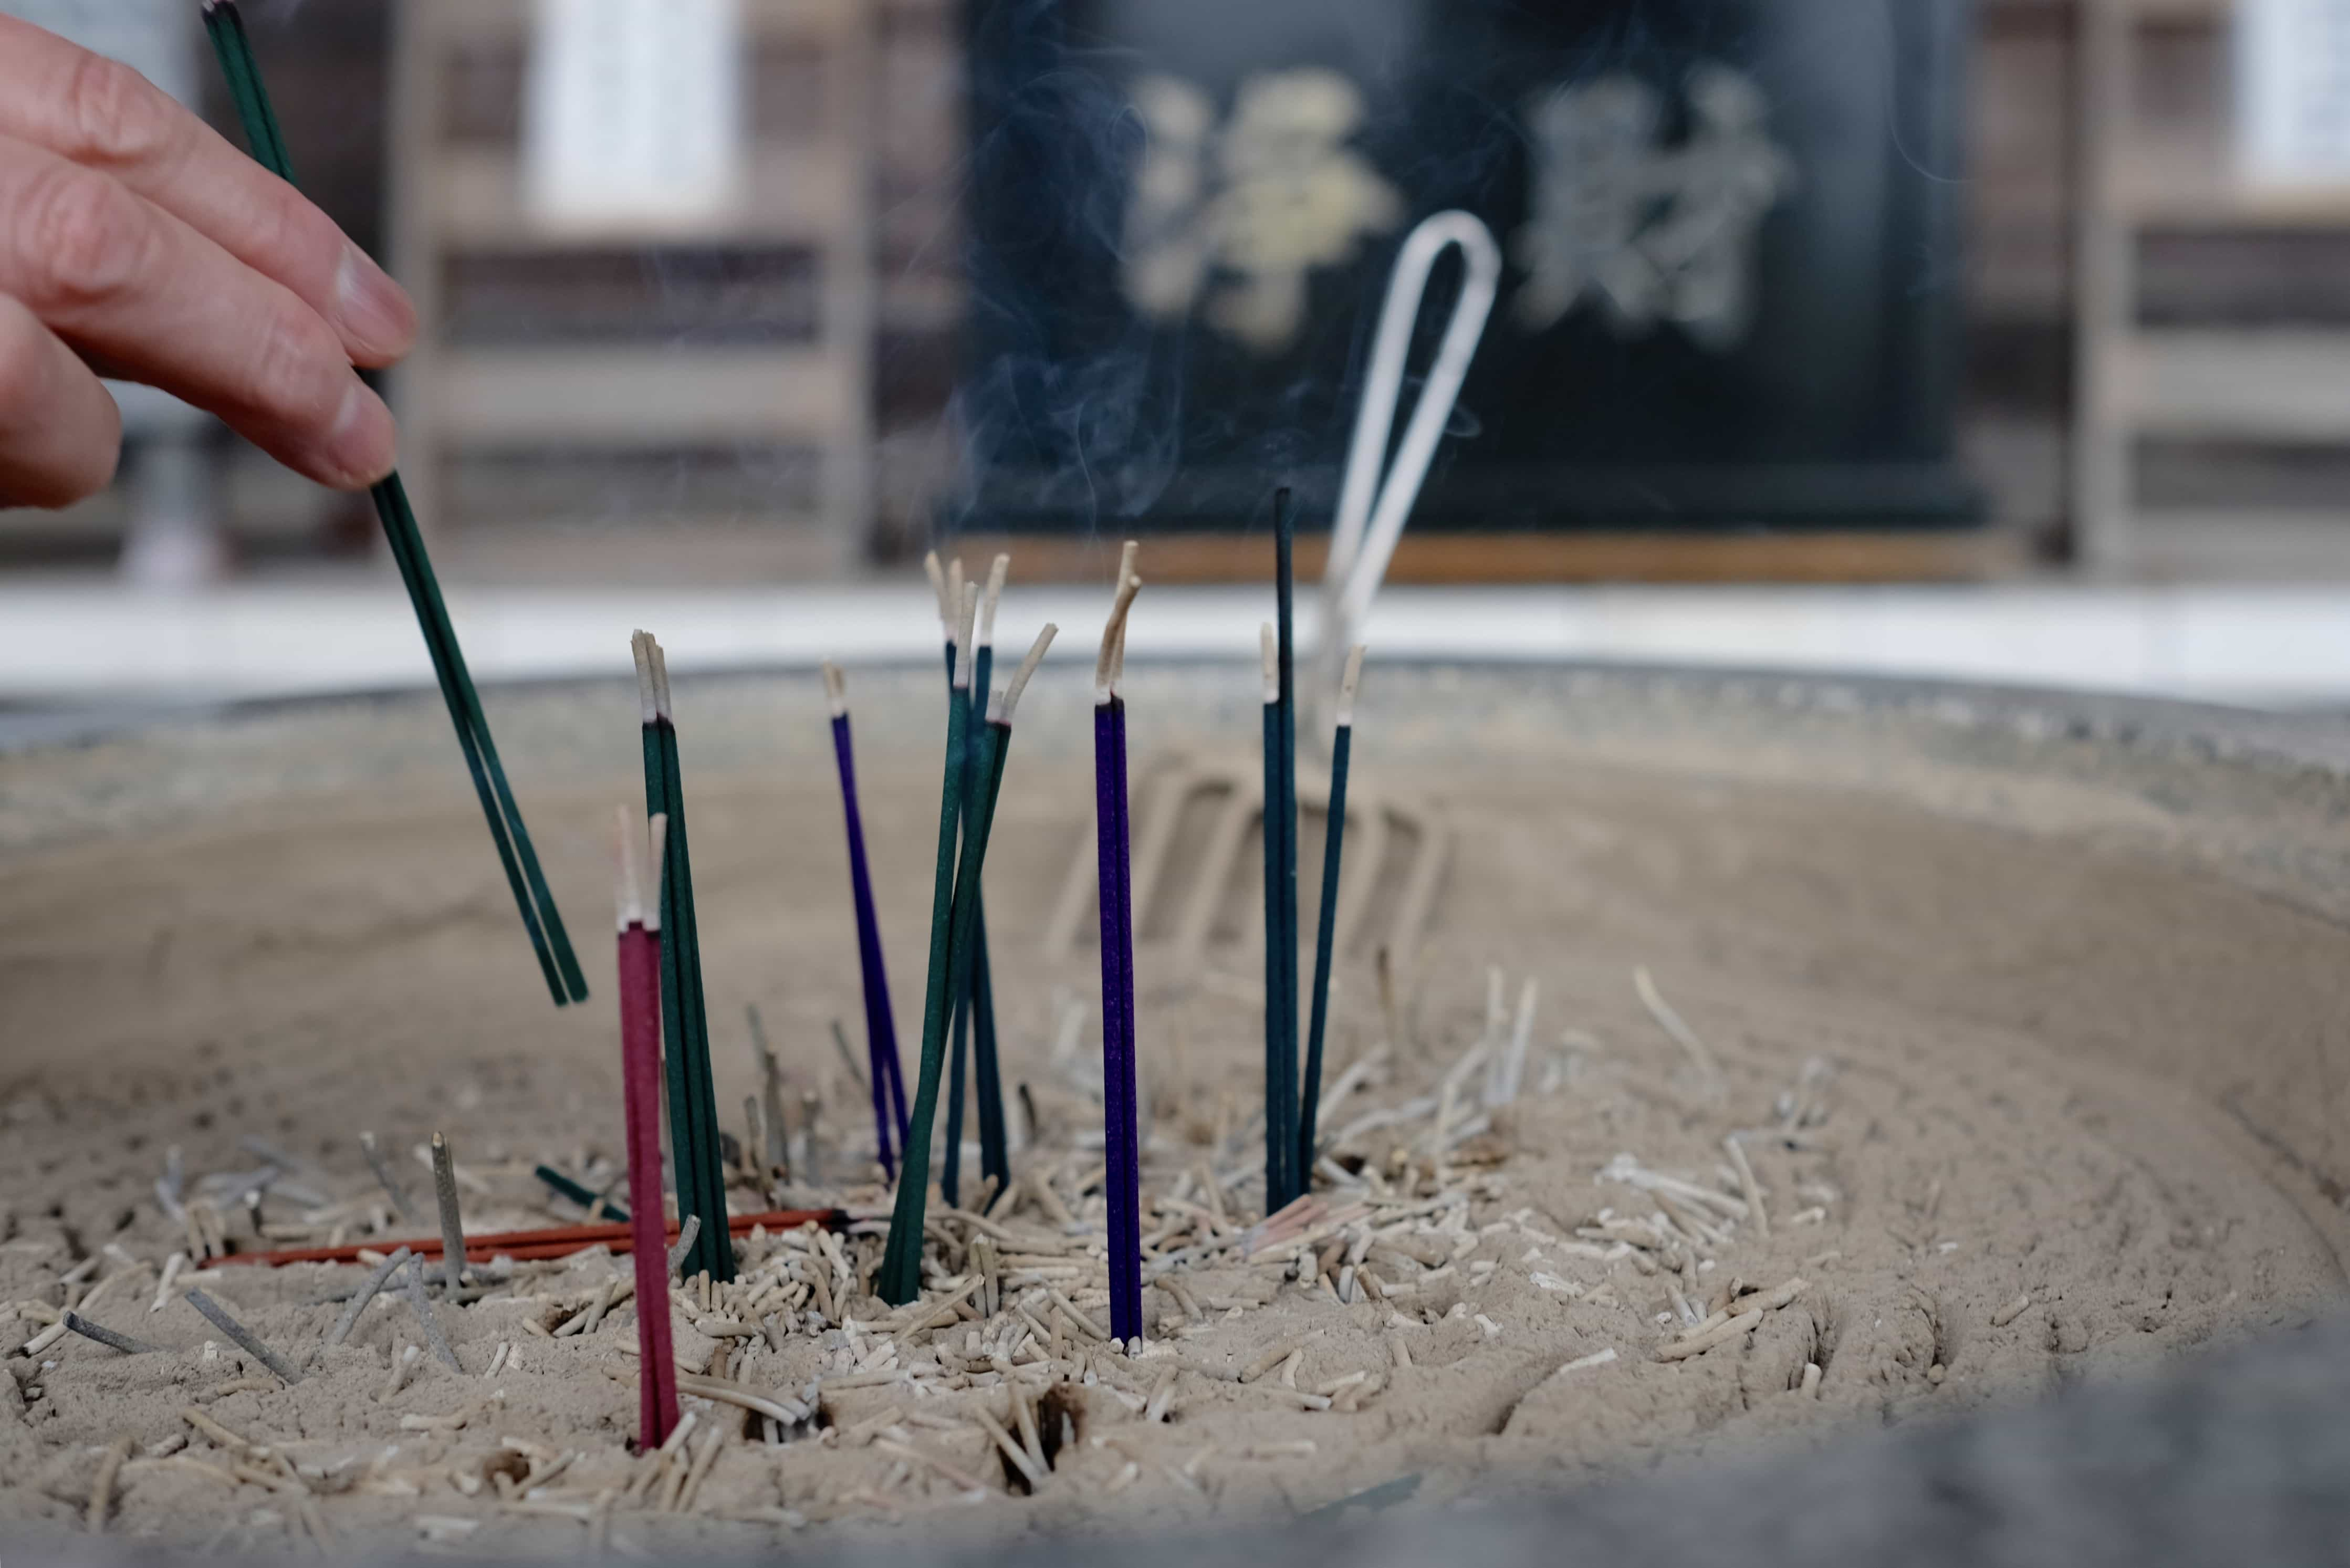 Burning incense at Ryūkōji